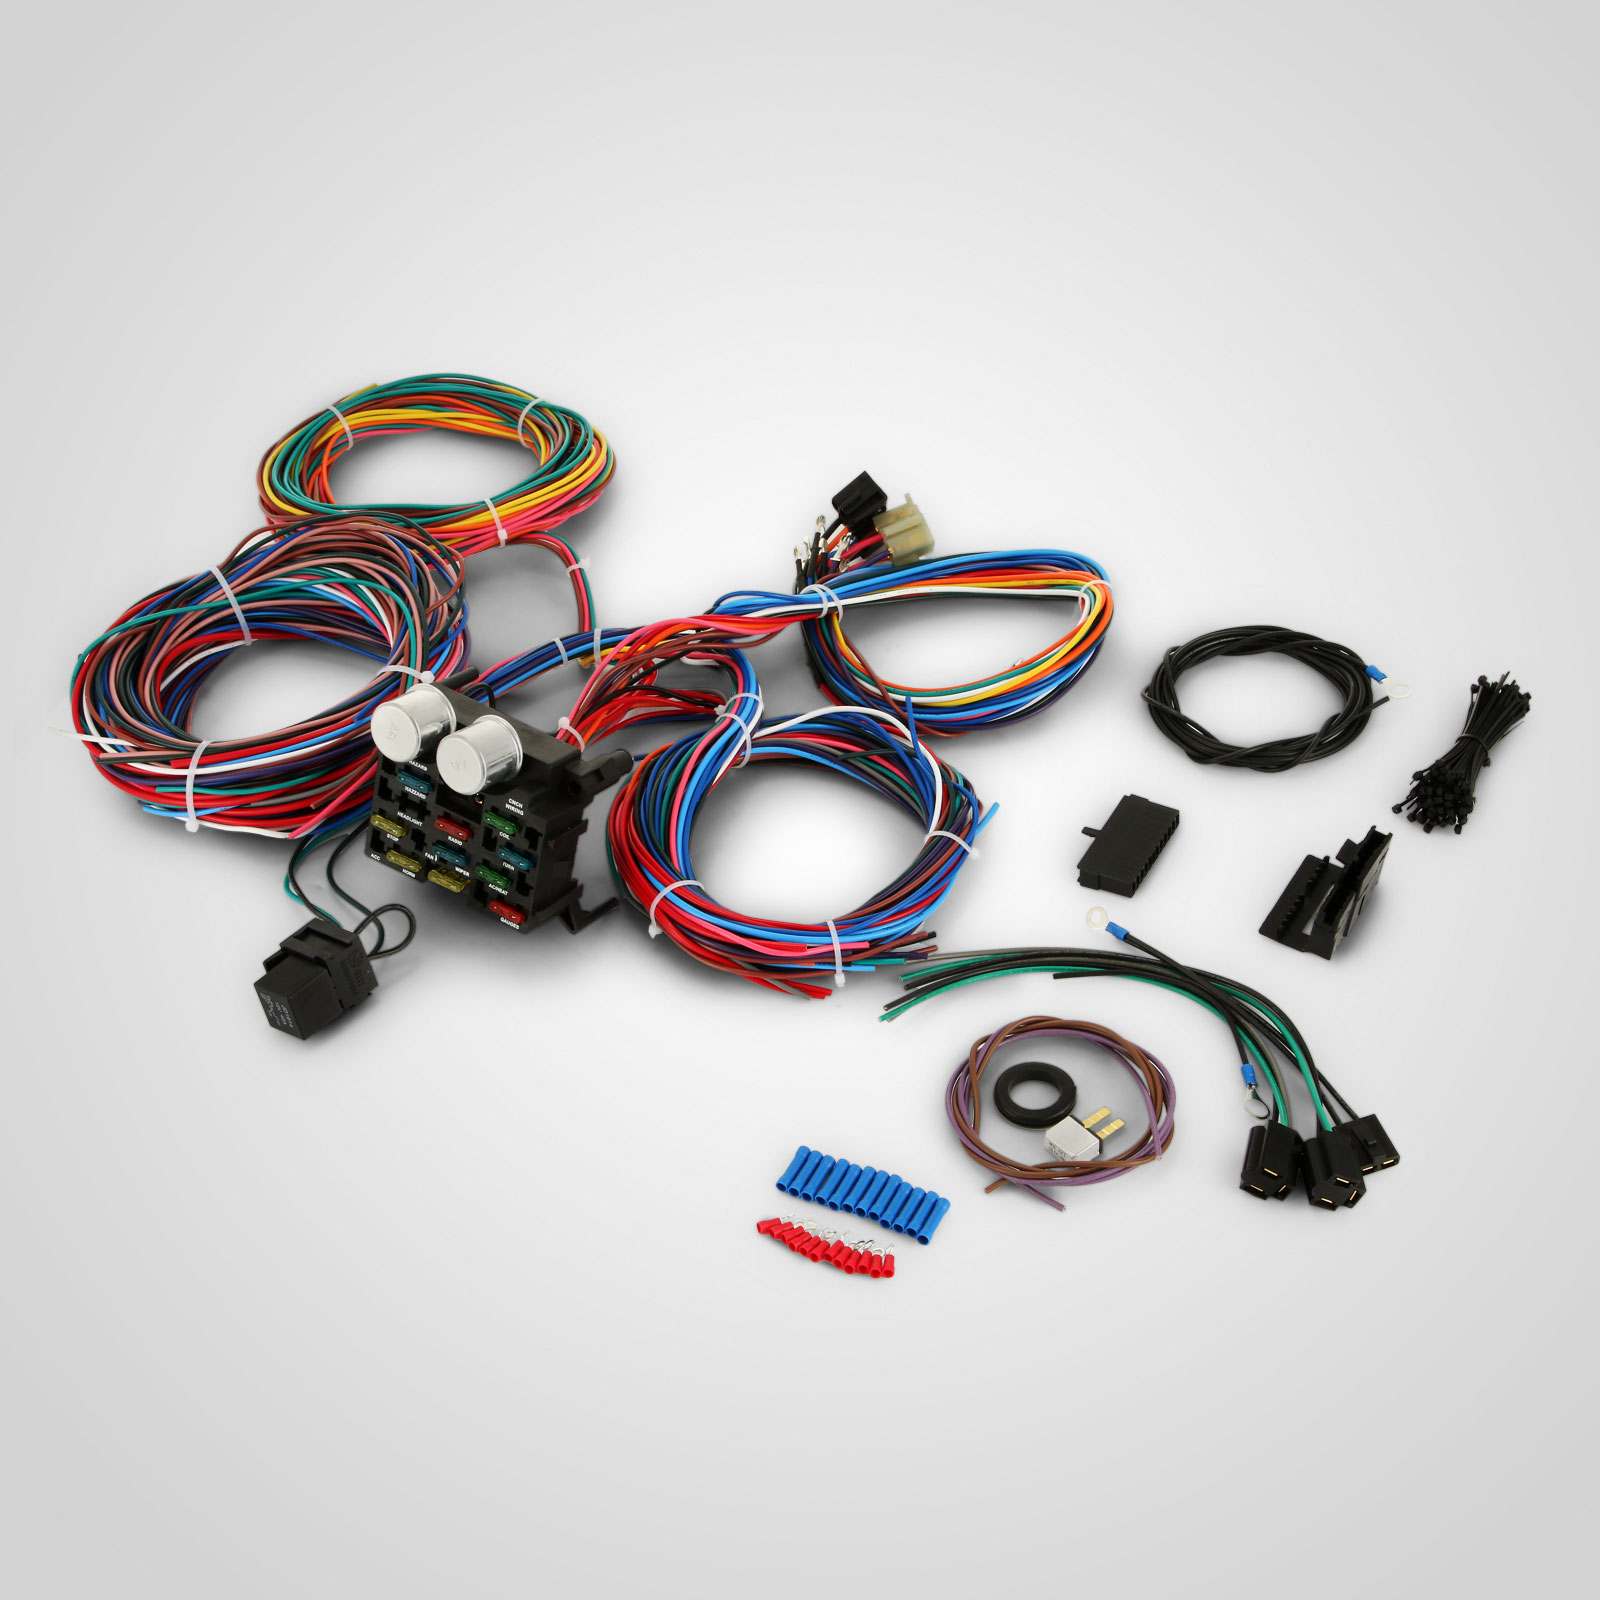 d513 6 real 12 circuit street rod wiring harness standard panel car truck street rod wiring harness at creativeand.co